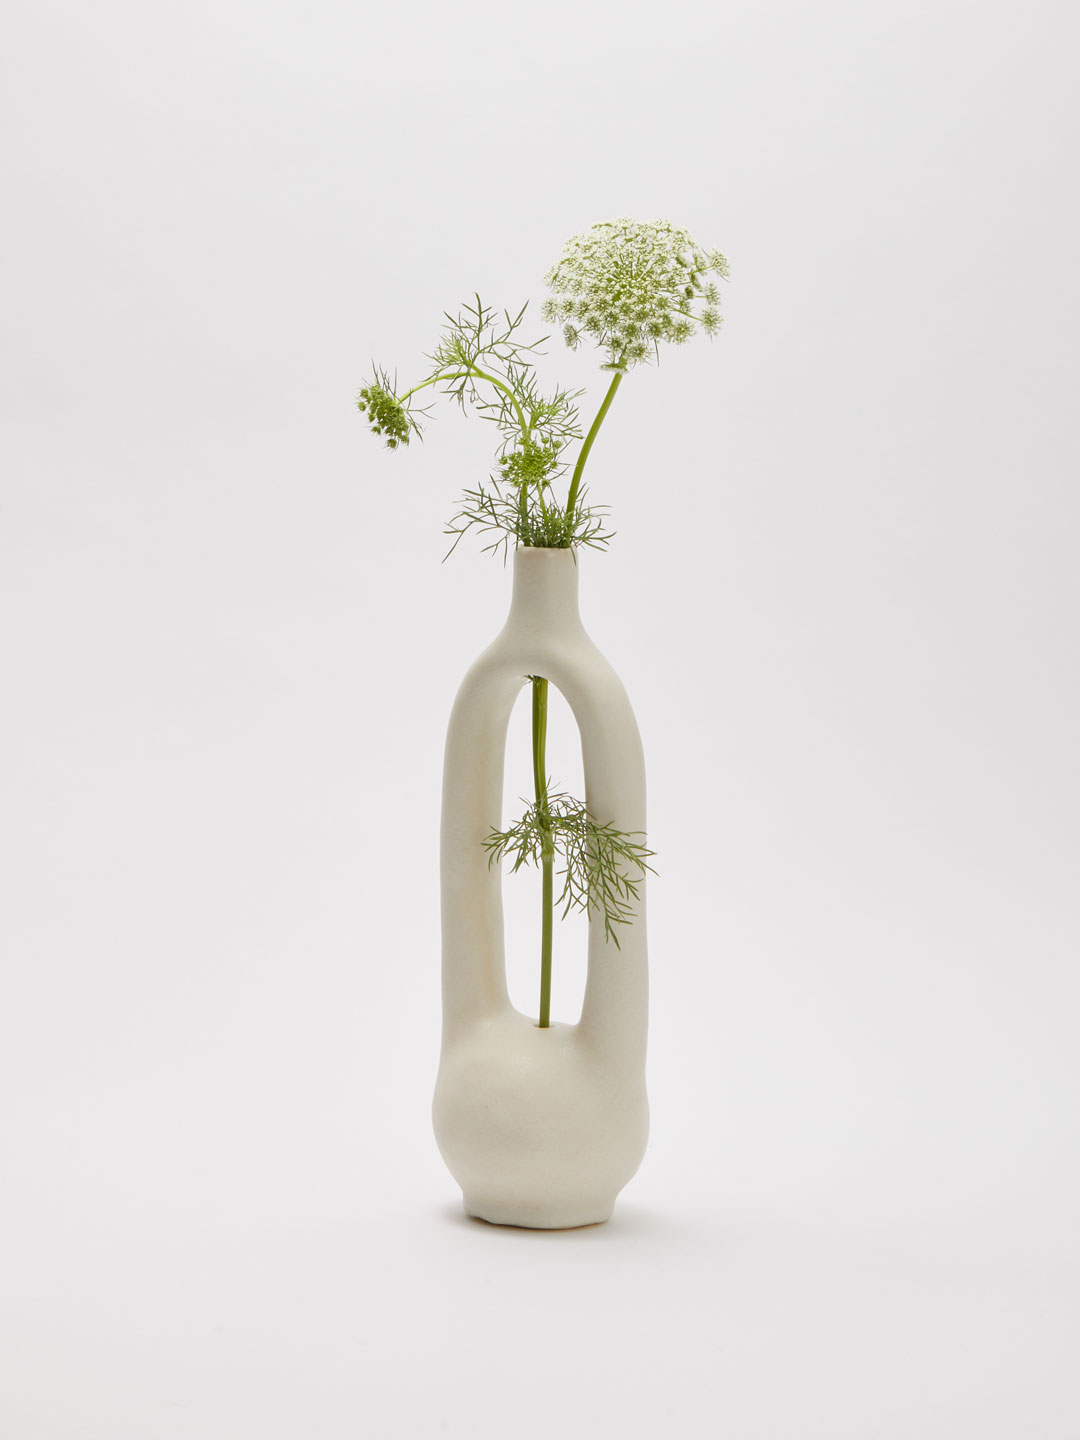 Single Stem Vessel small - Off White